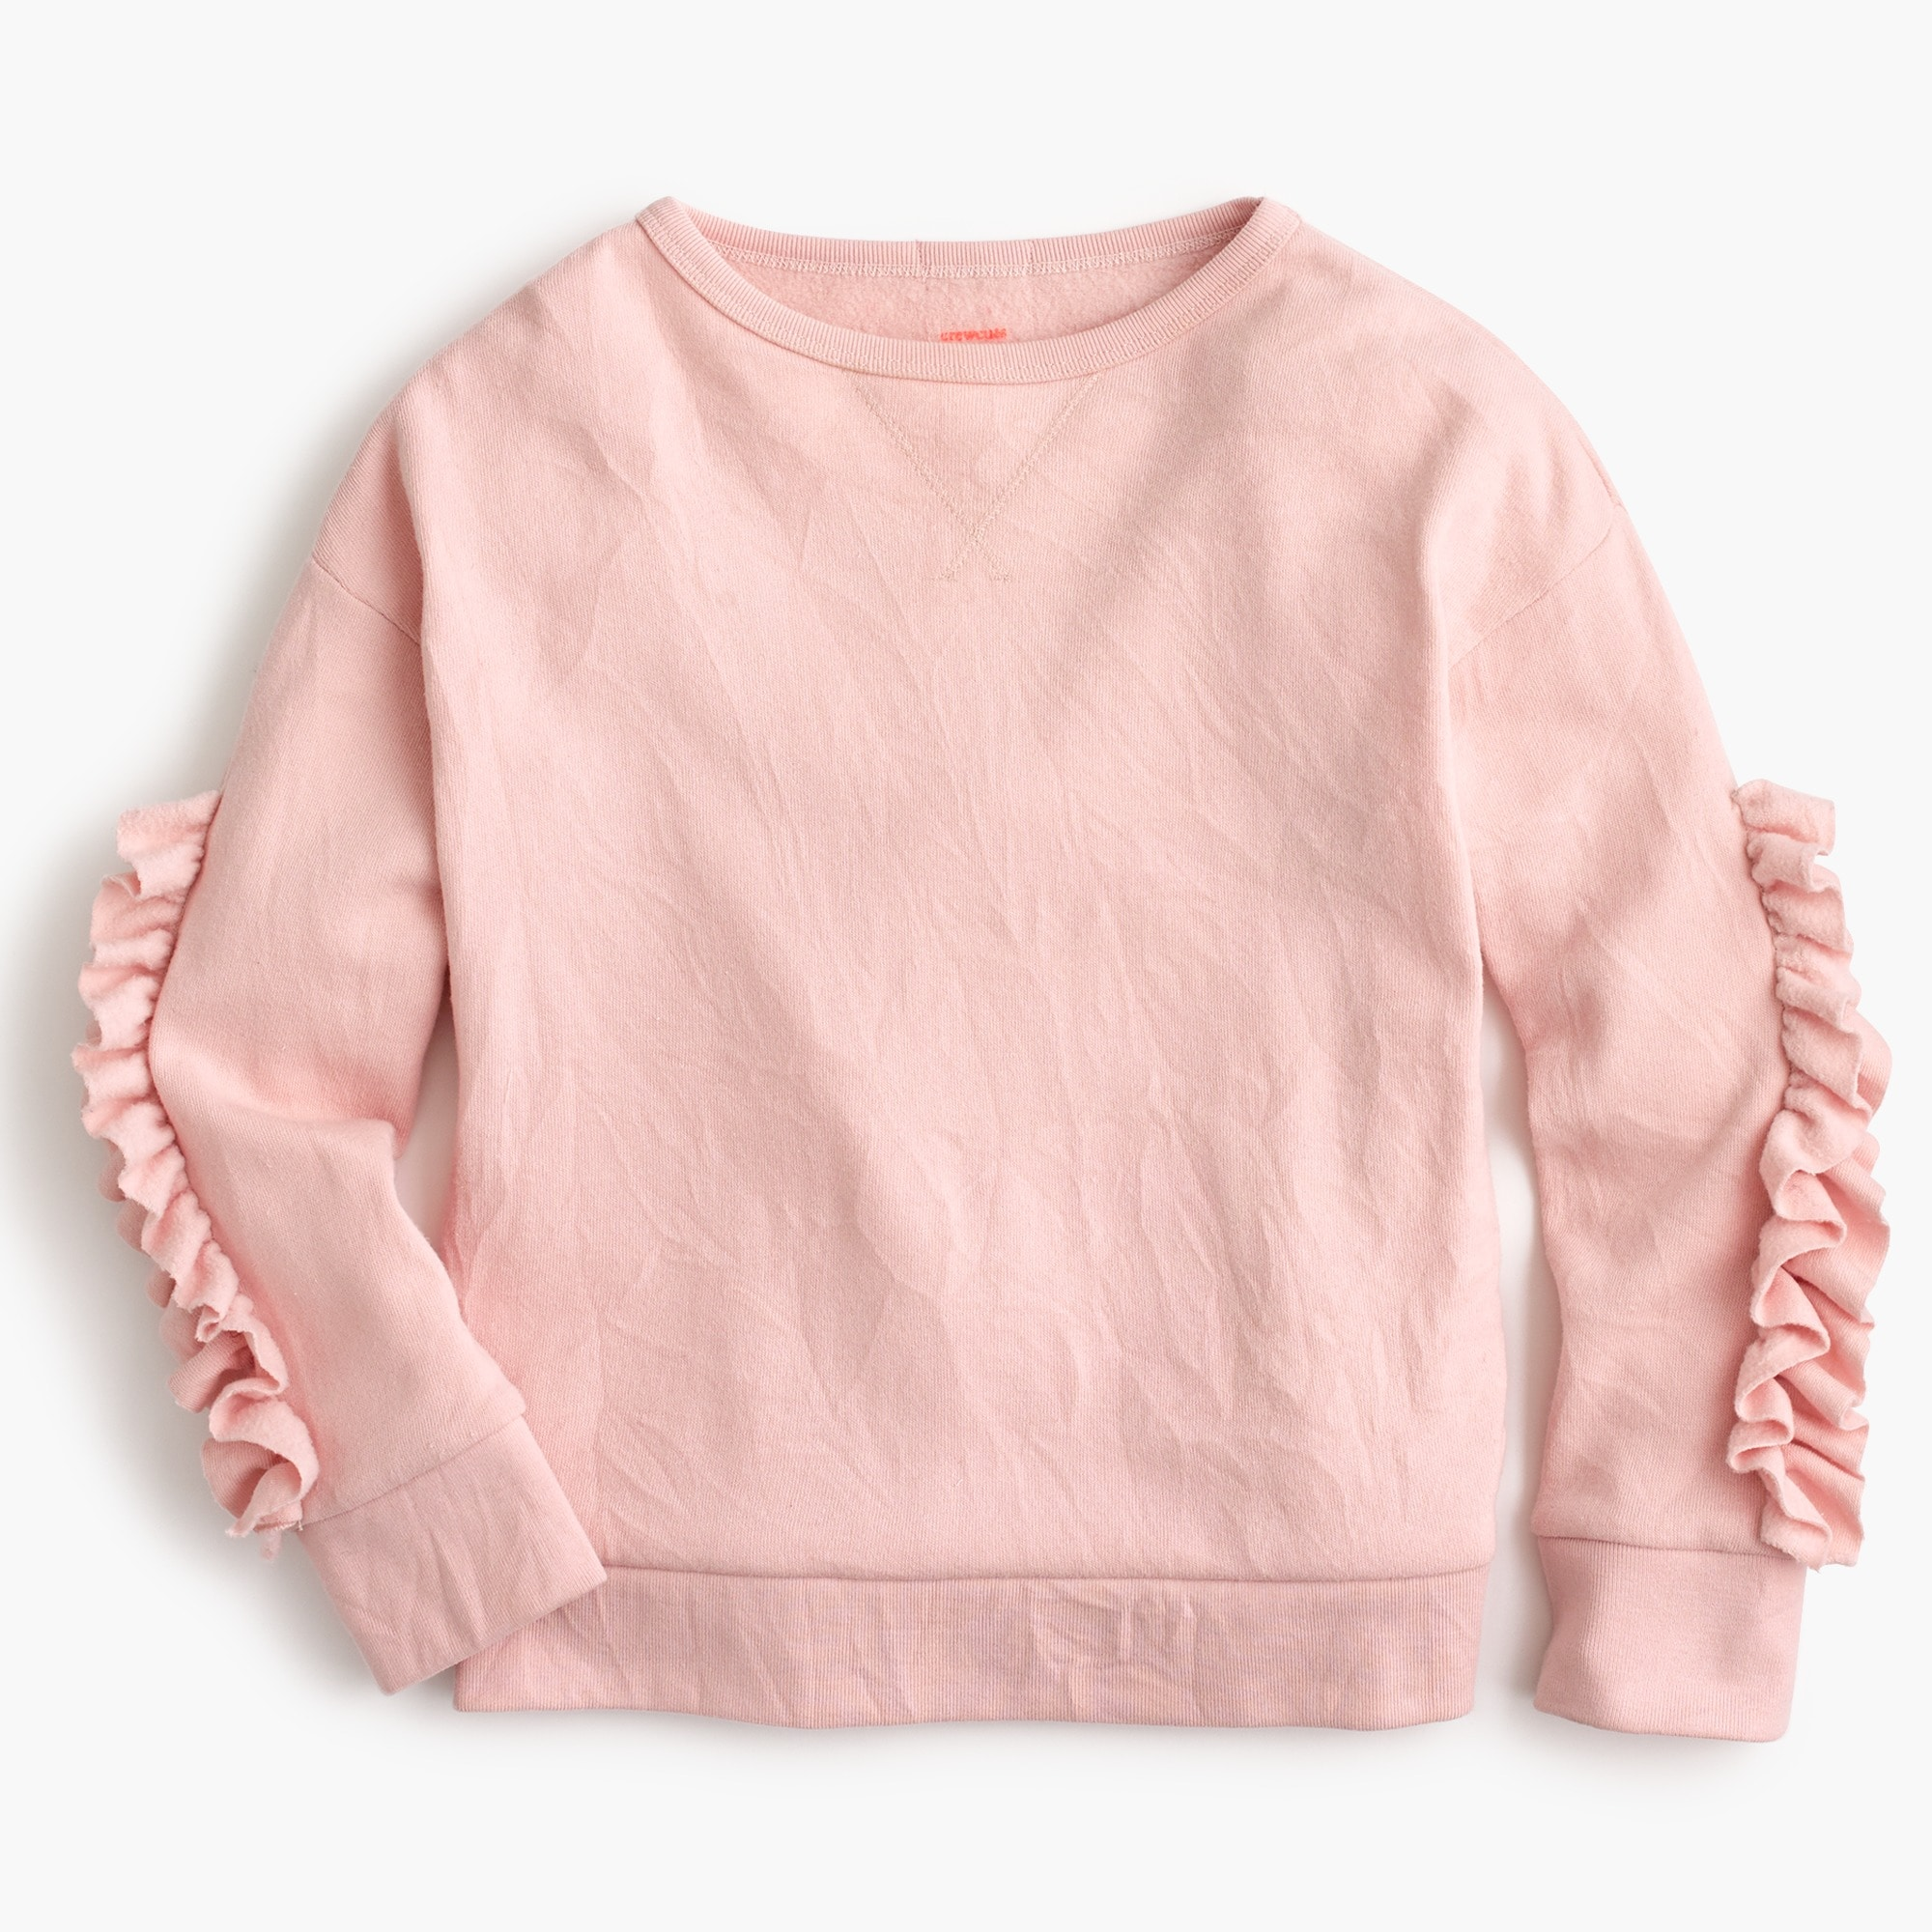 Girls' ruffle-trimmed sweatshirt girl new arrivals c